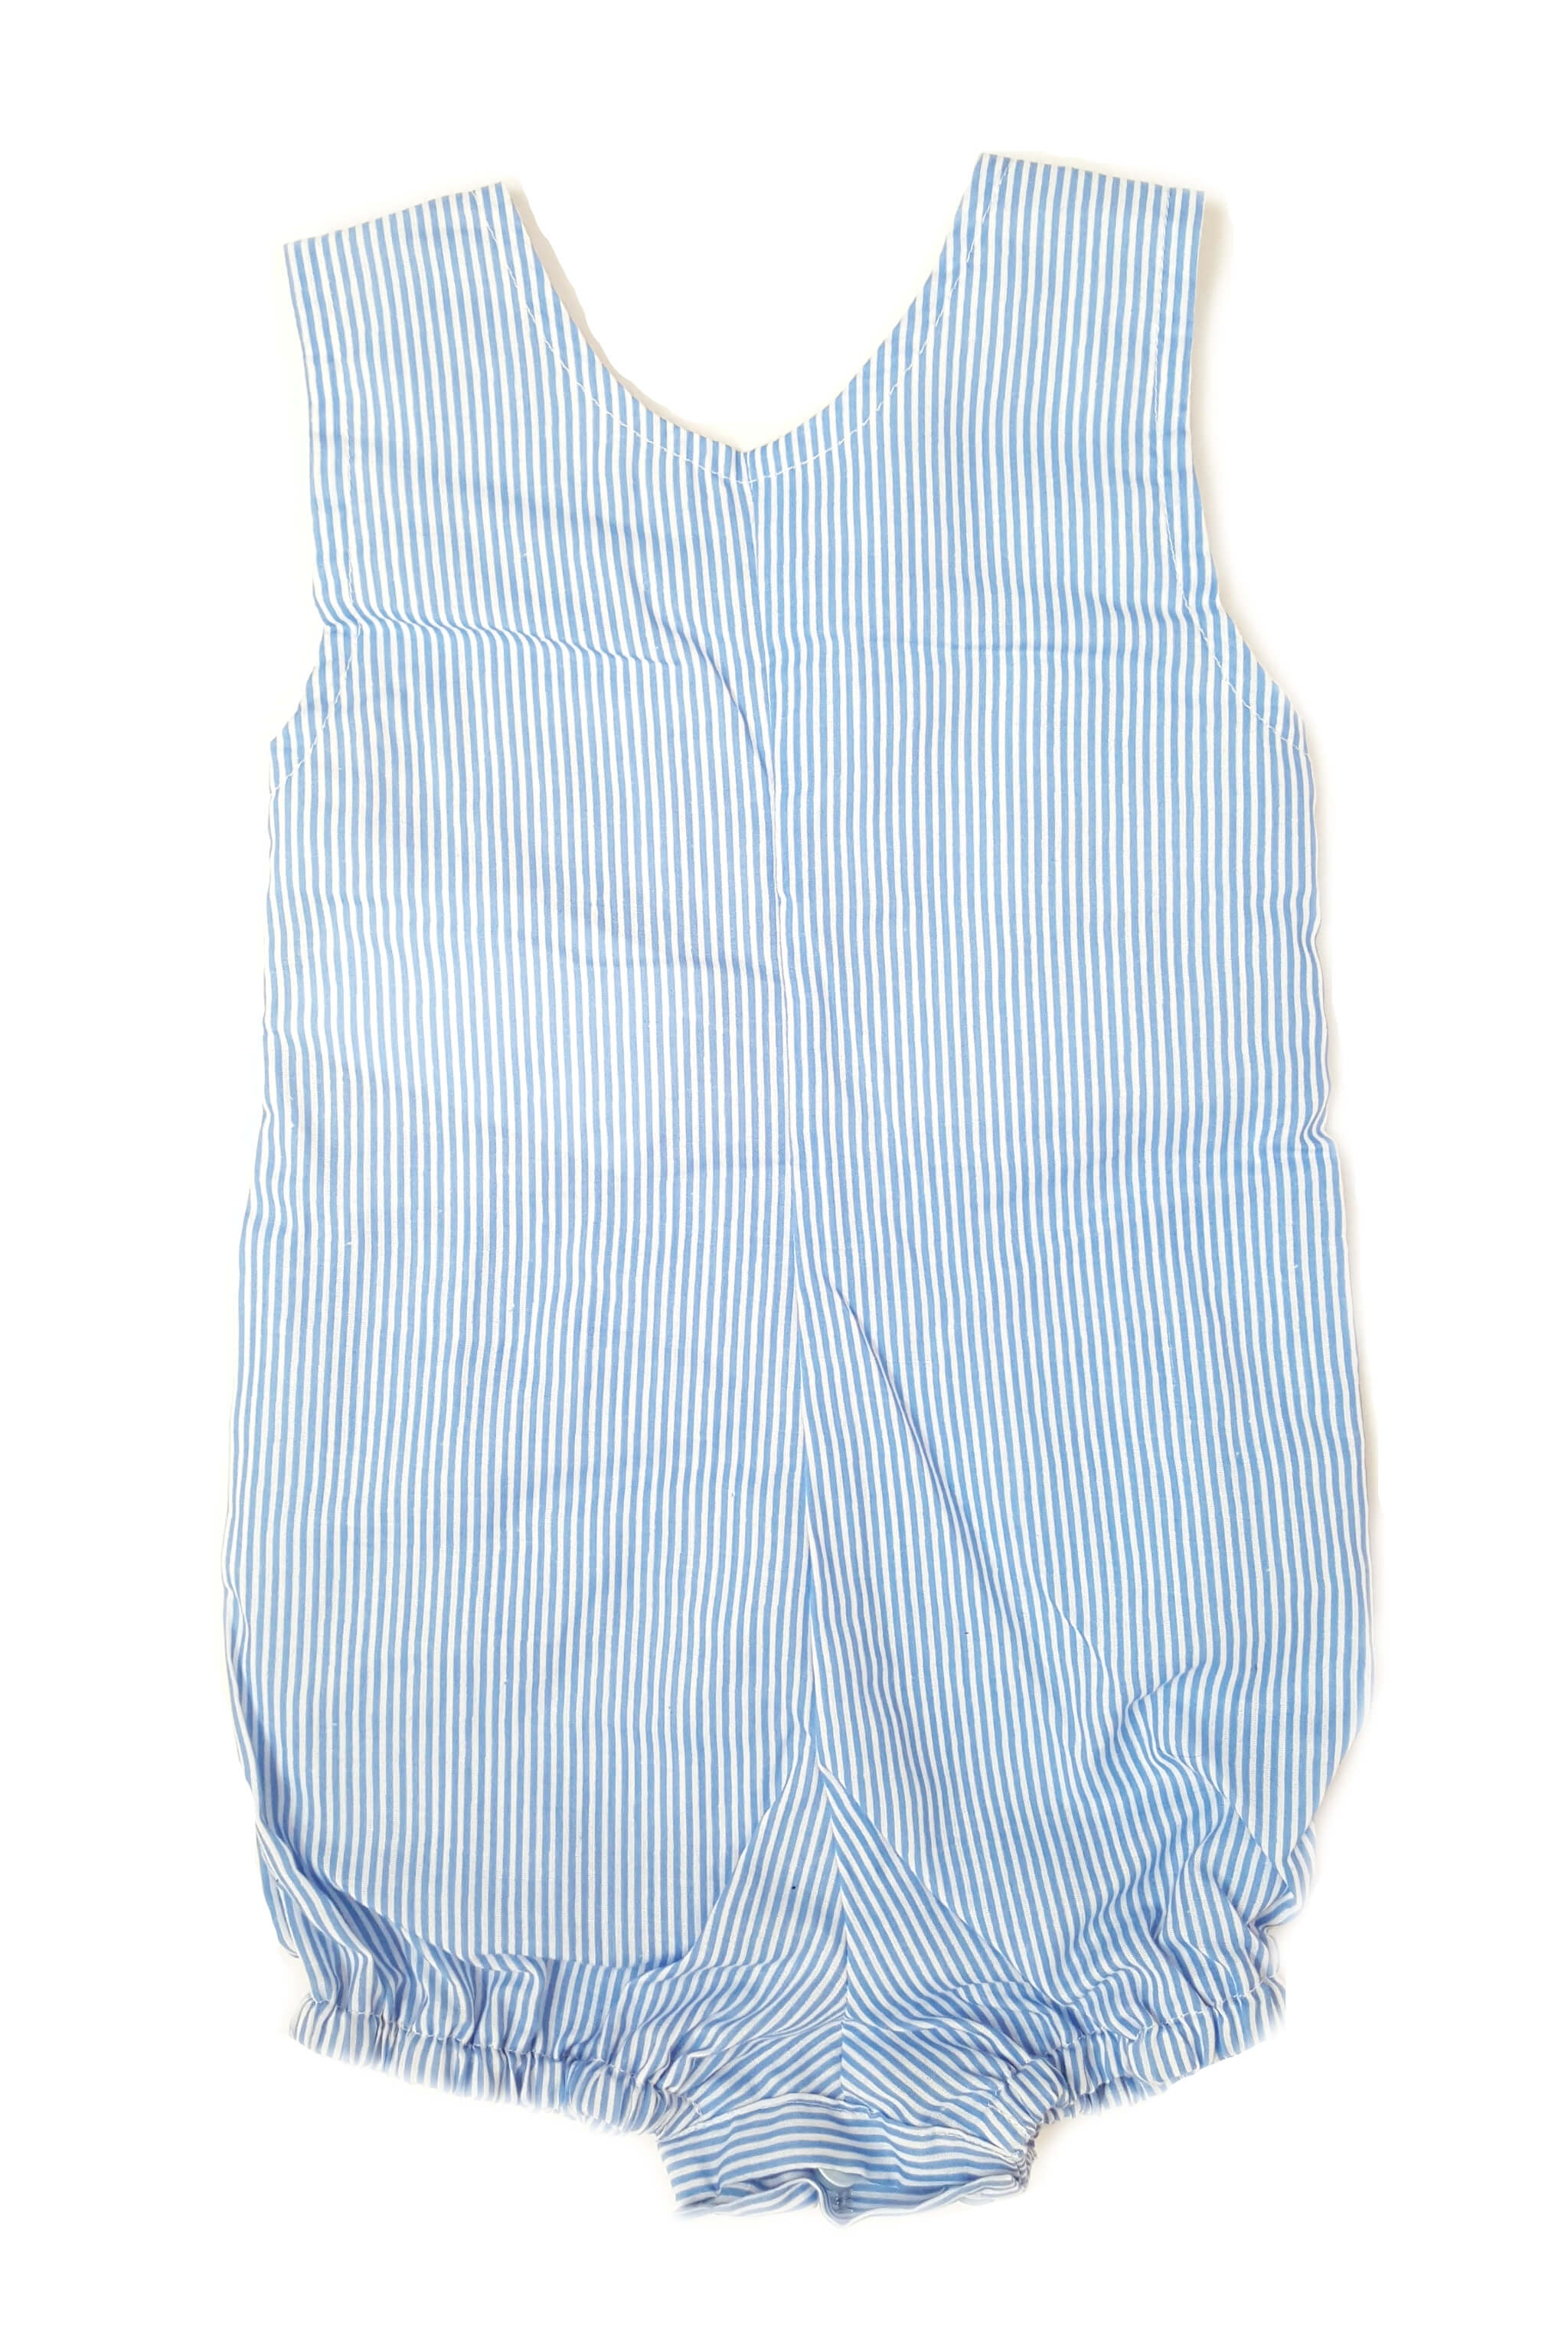 Back of blue seersucker nautical striped romper for baby boys